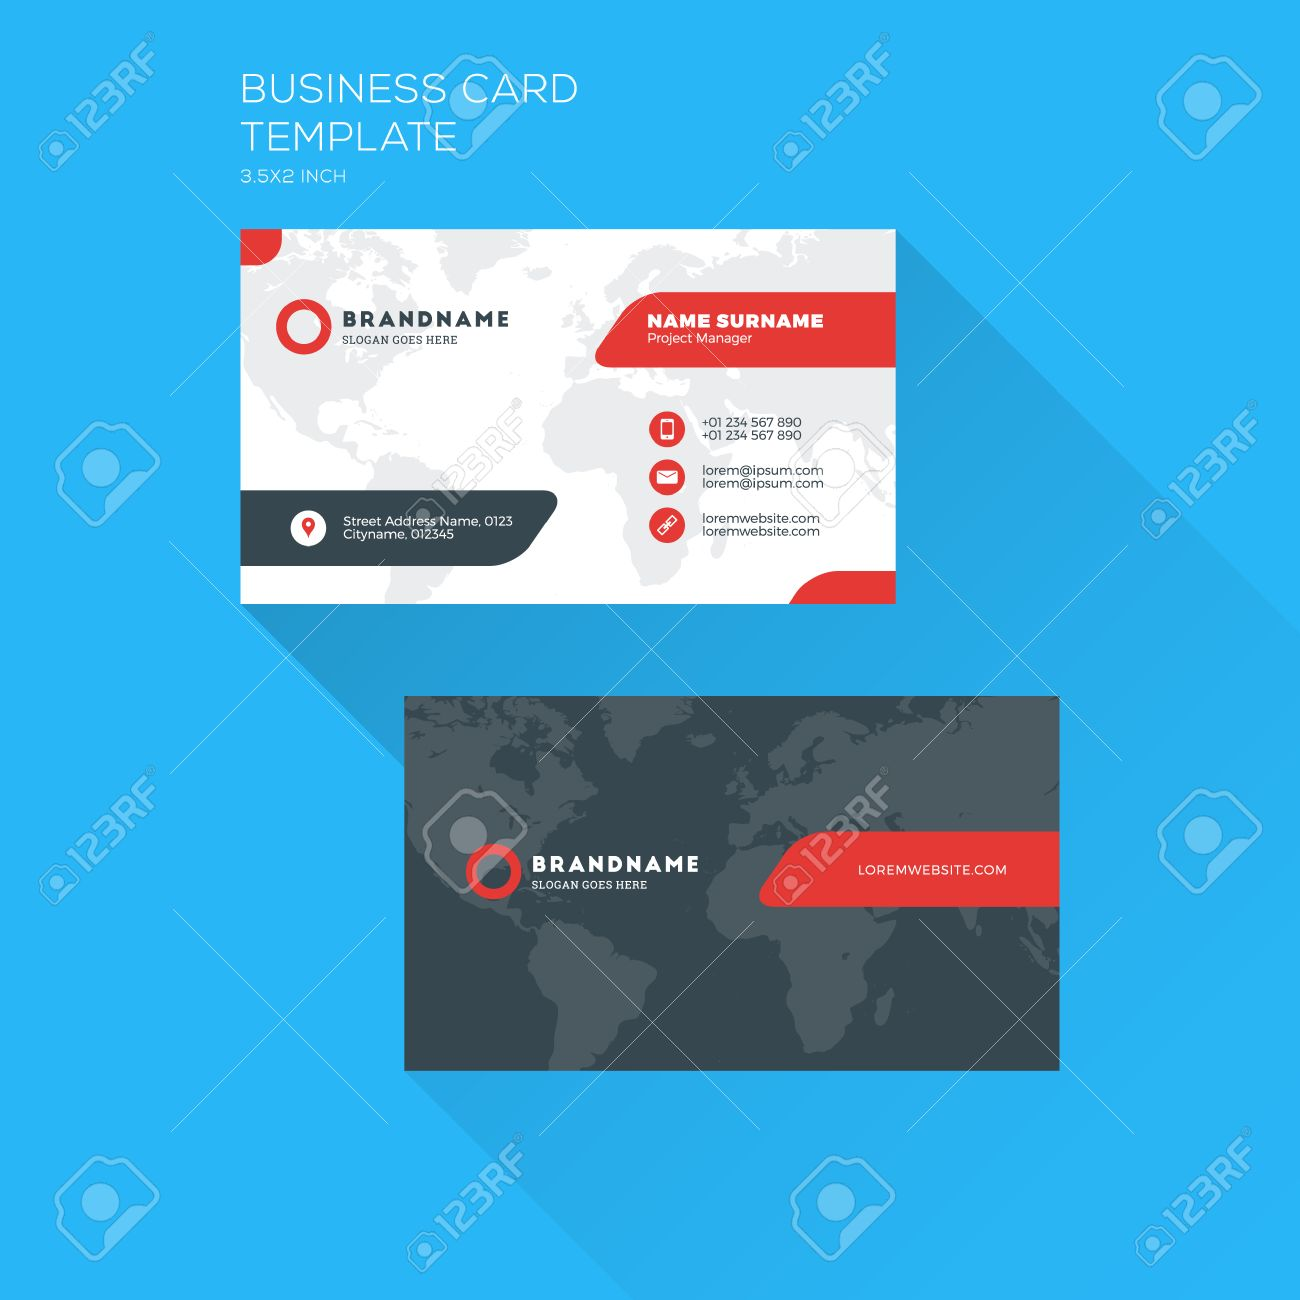 Business Credit Cards For New Businesses With No Credit Gallery ...